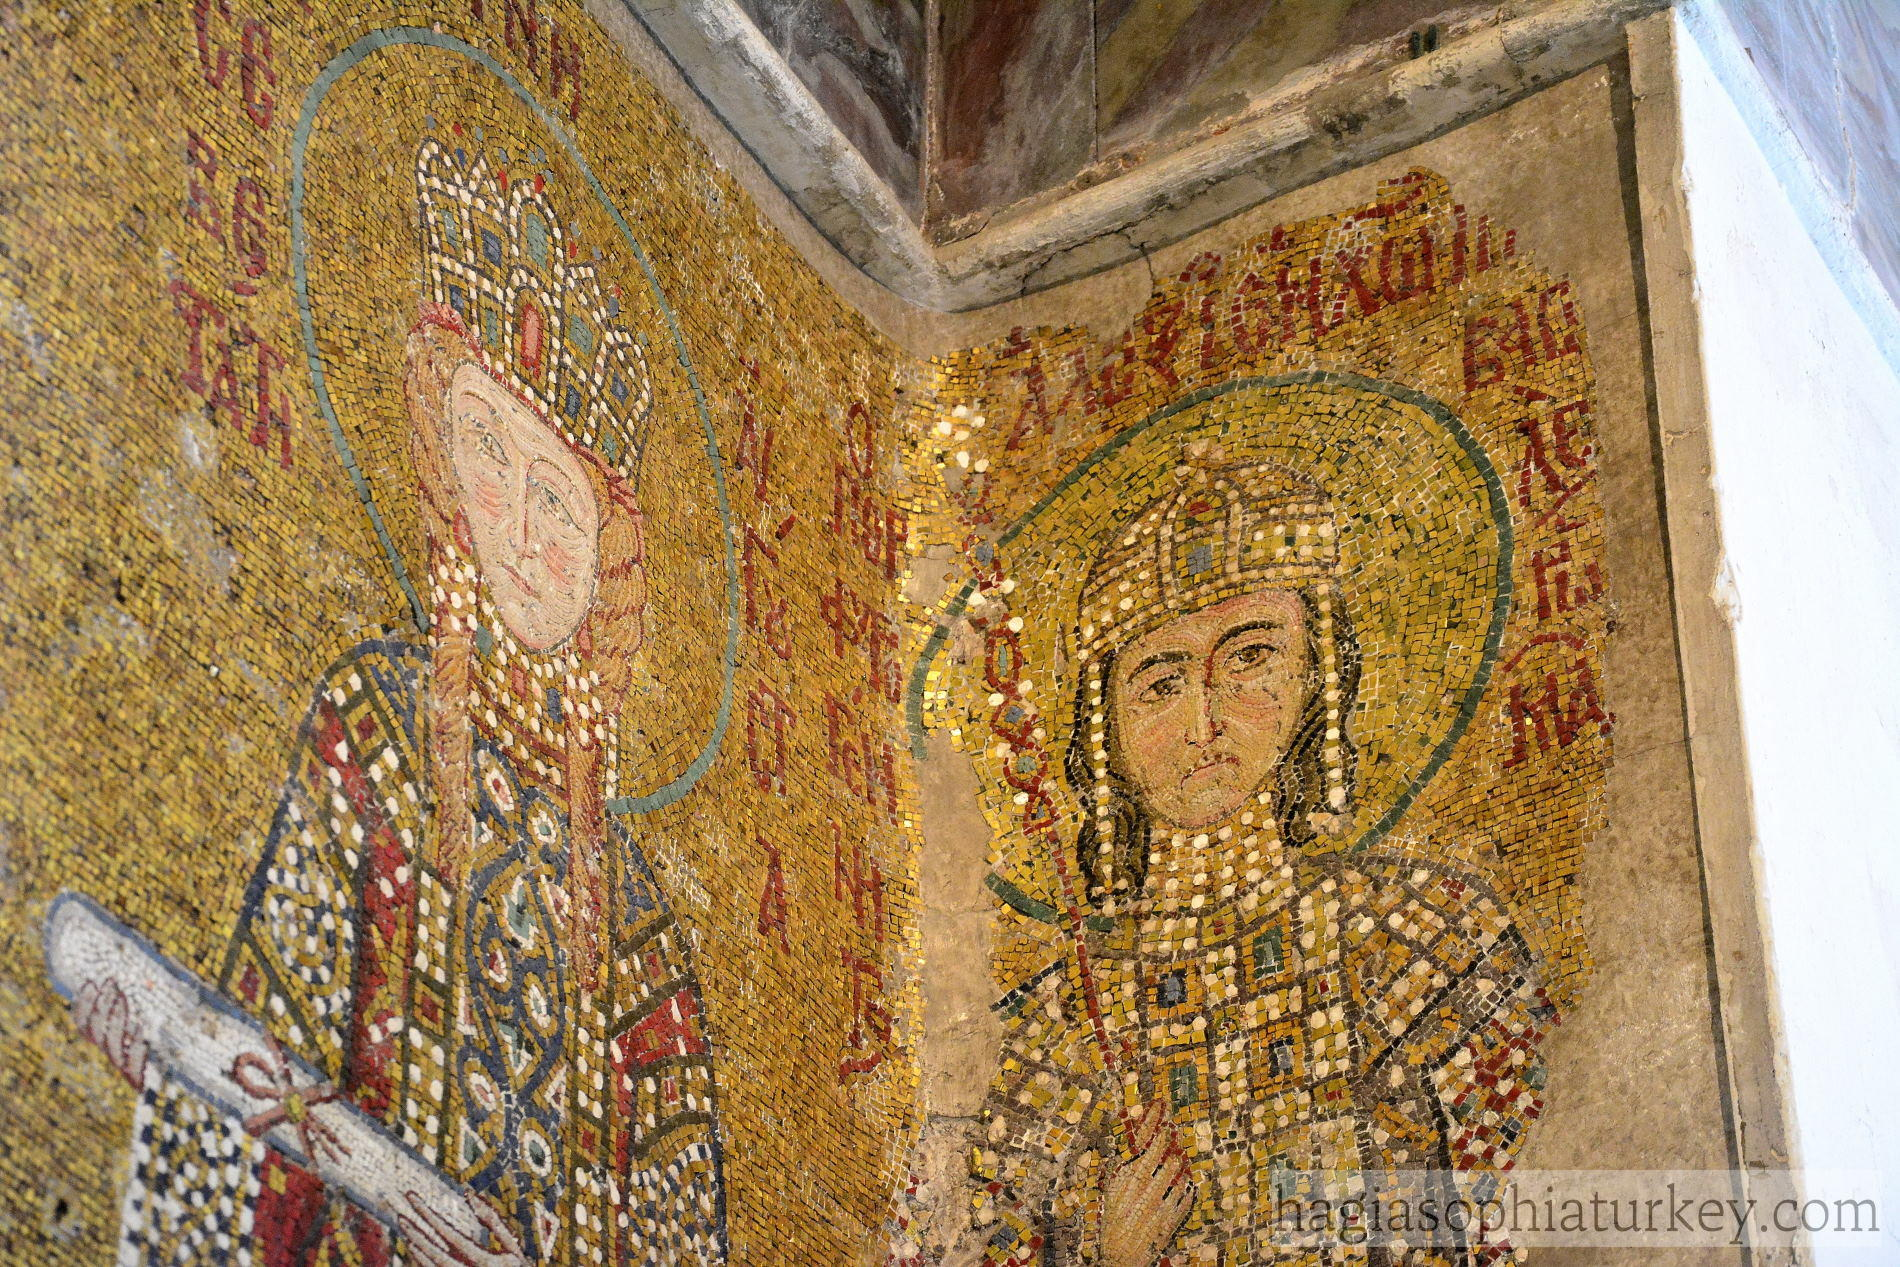 Empress Eirene and Alexios Mosaic in Hagia Sophia